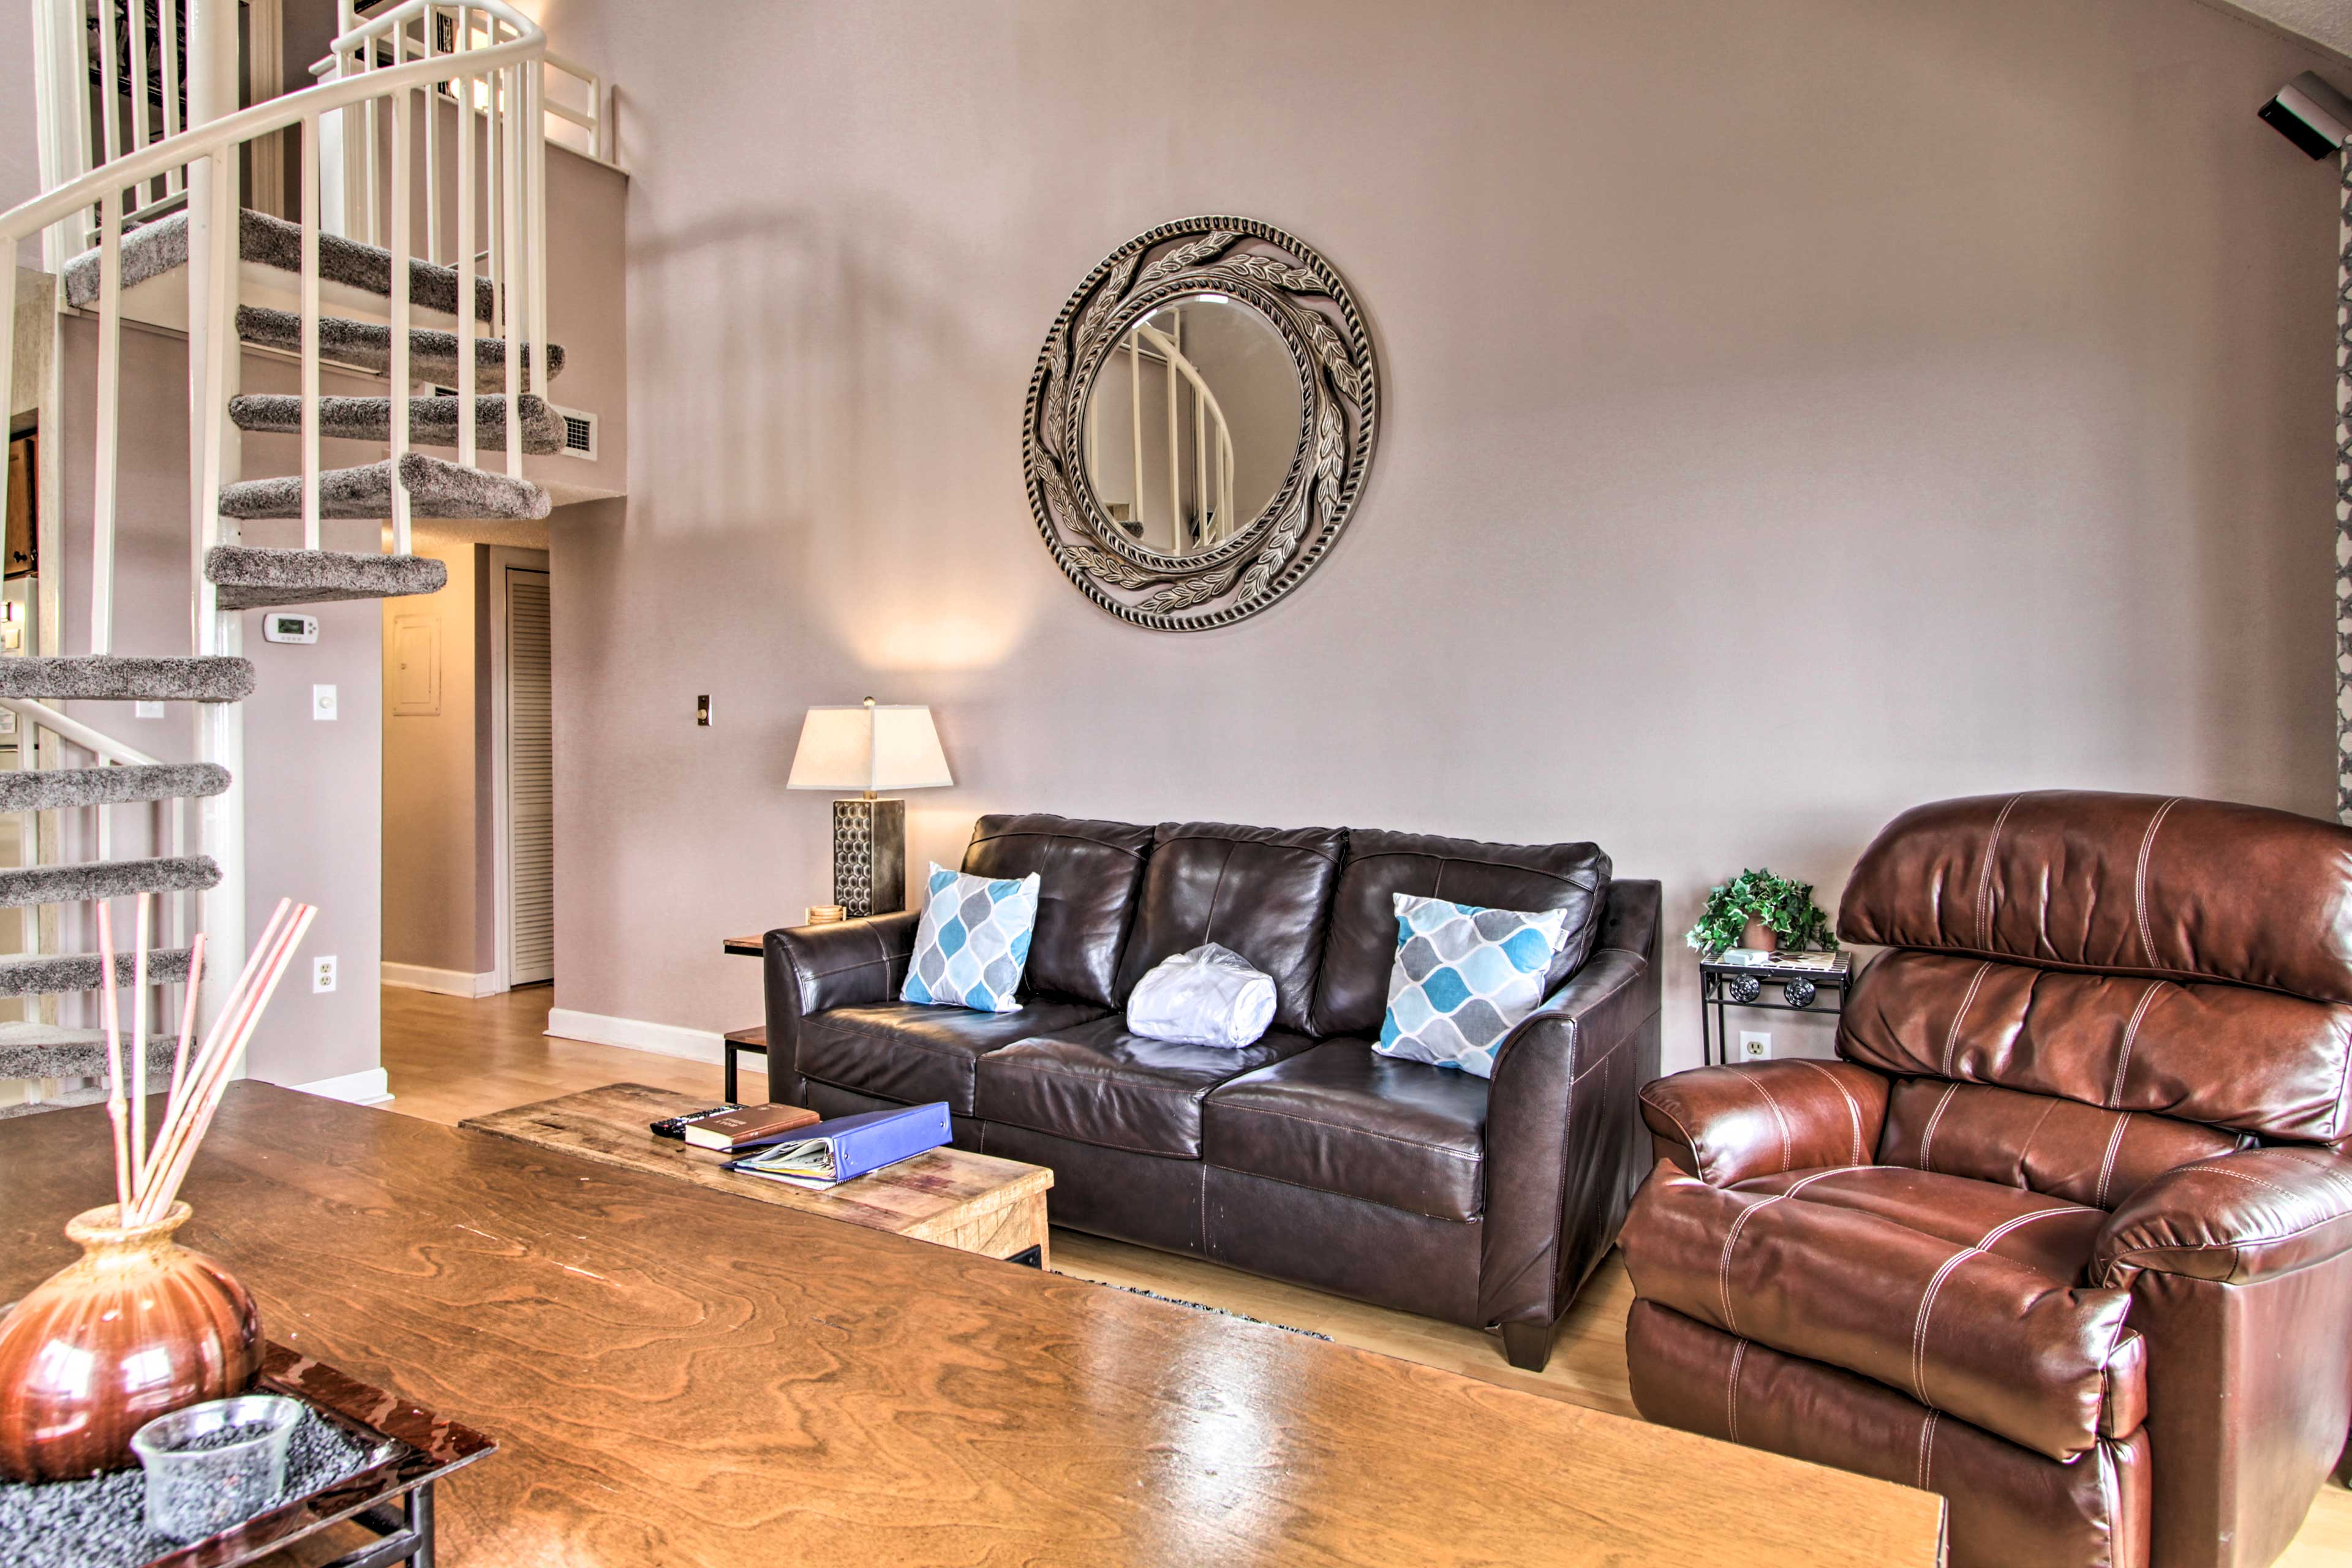 Relax on the brand new leather furnishings.